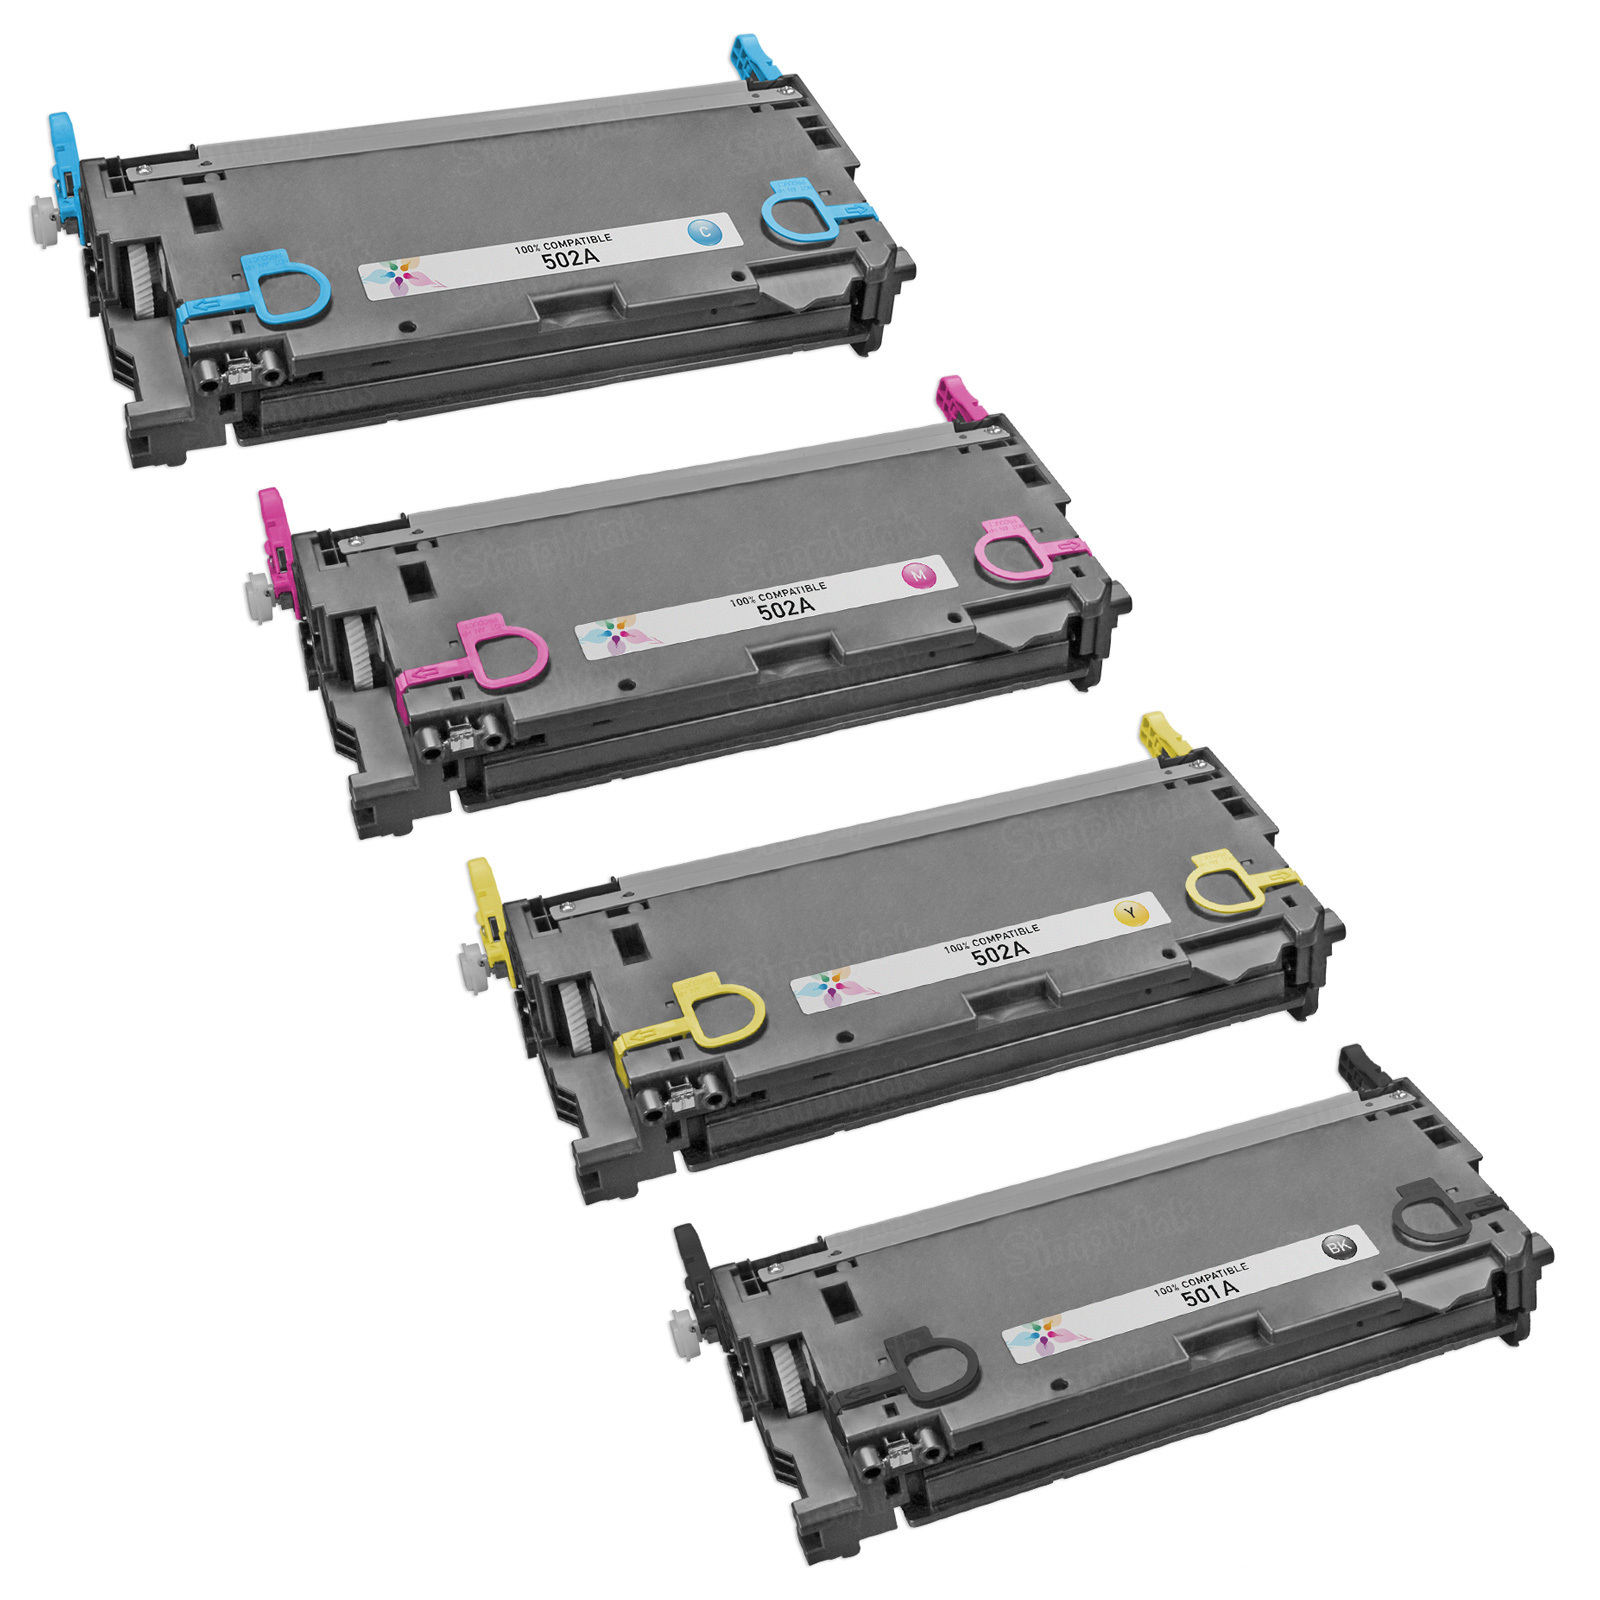 Remanufactured Replacement for HP 502A (Bk, C, M, Y) Set of 4 Toners